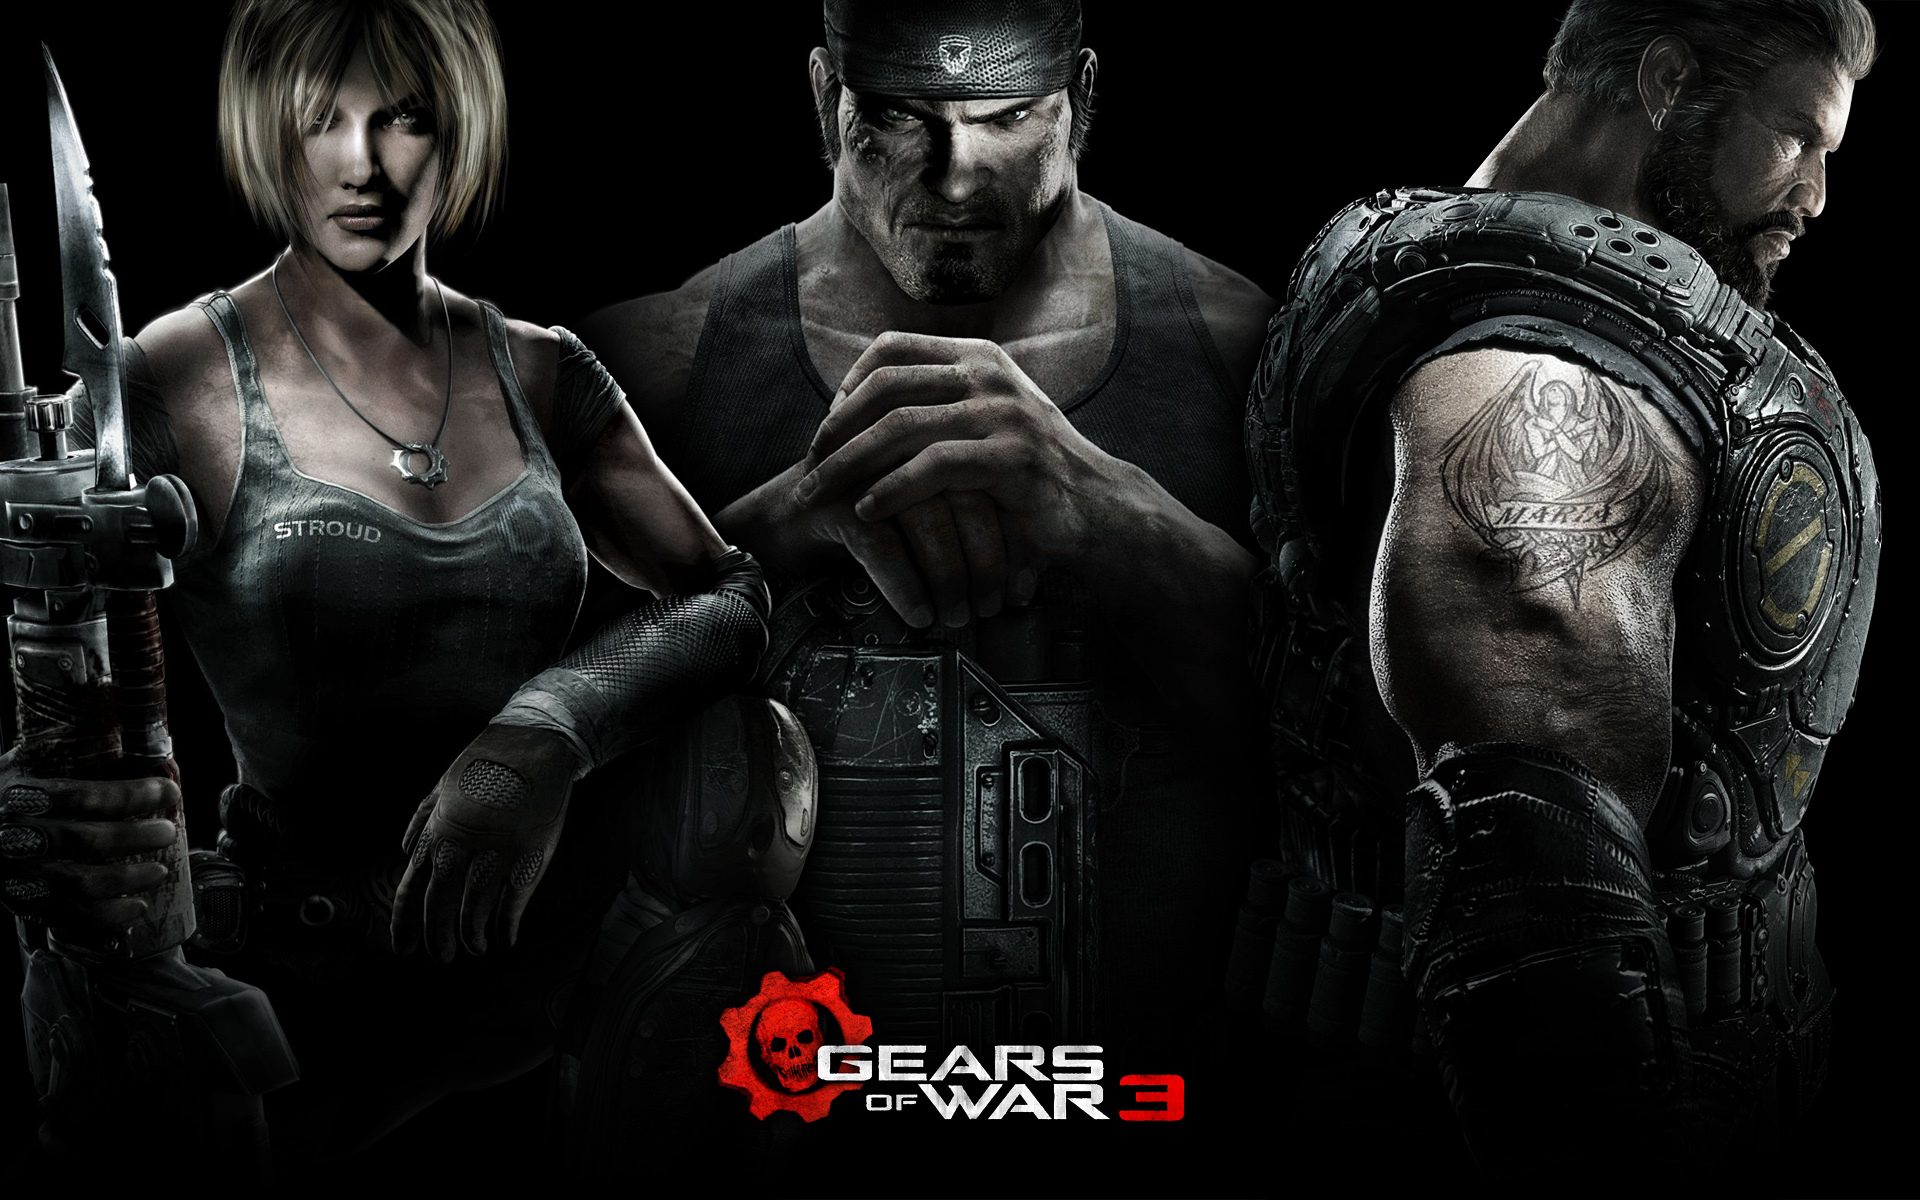 gears of war 3 HD Wallpaper